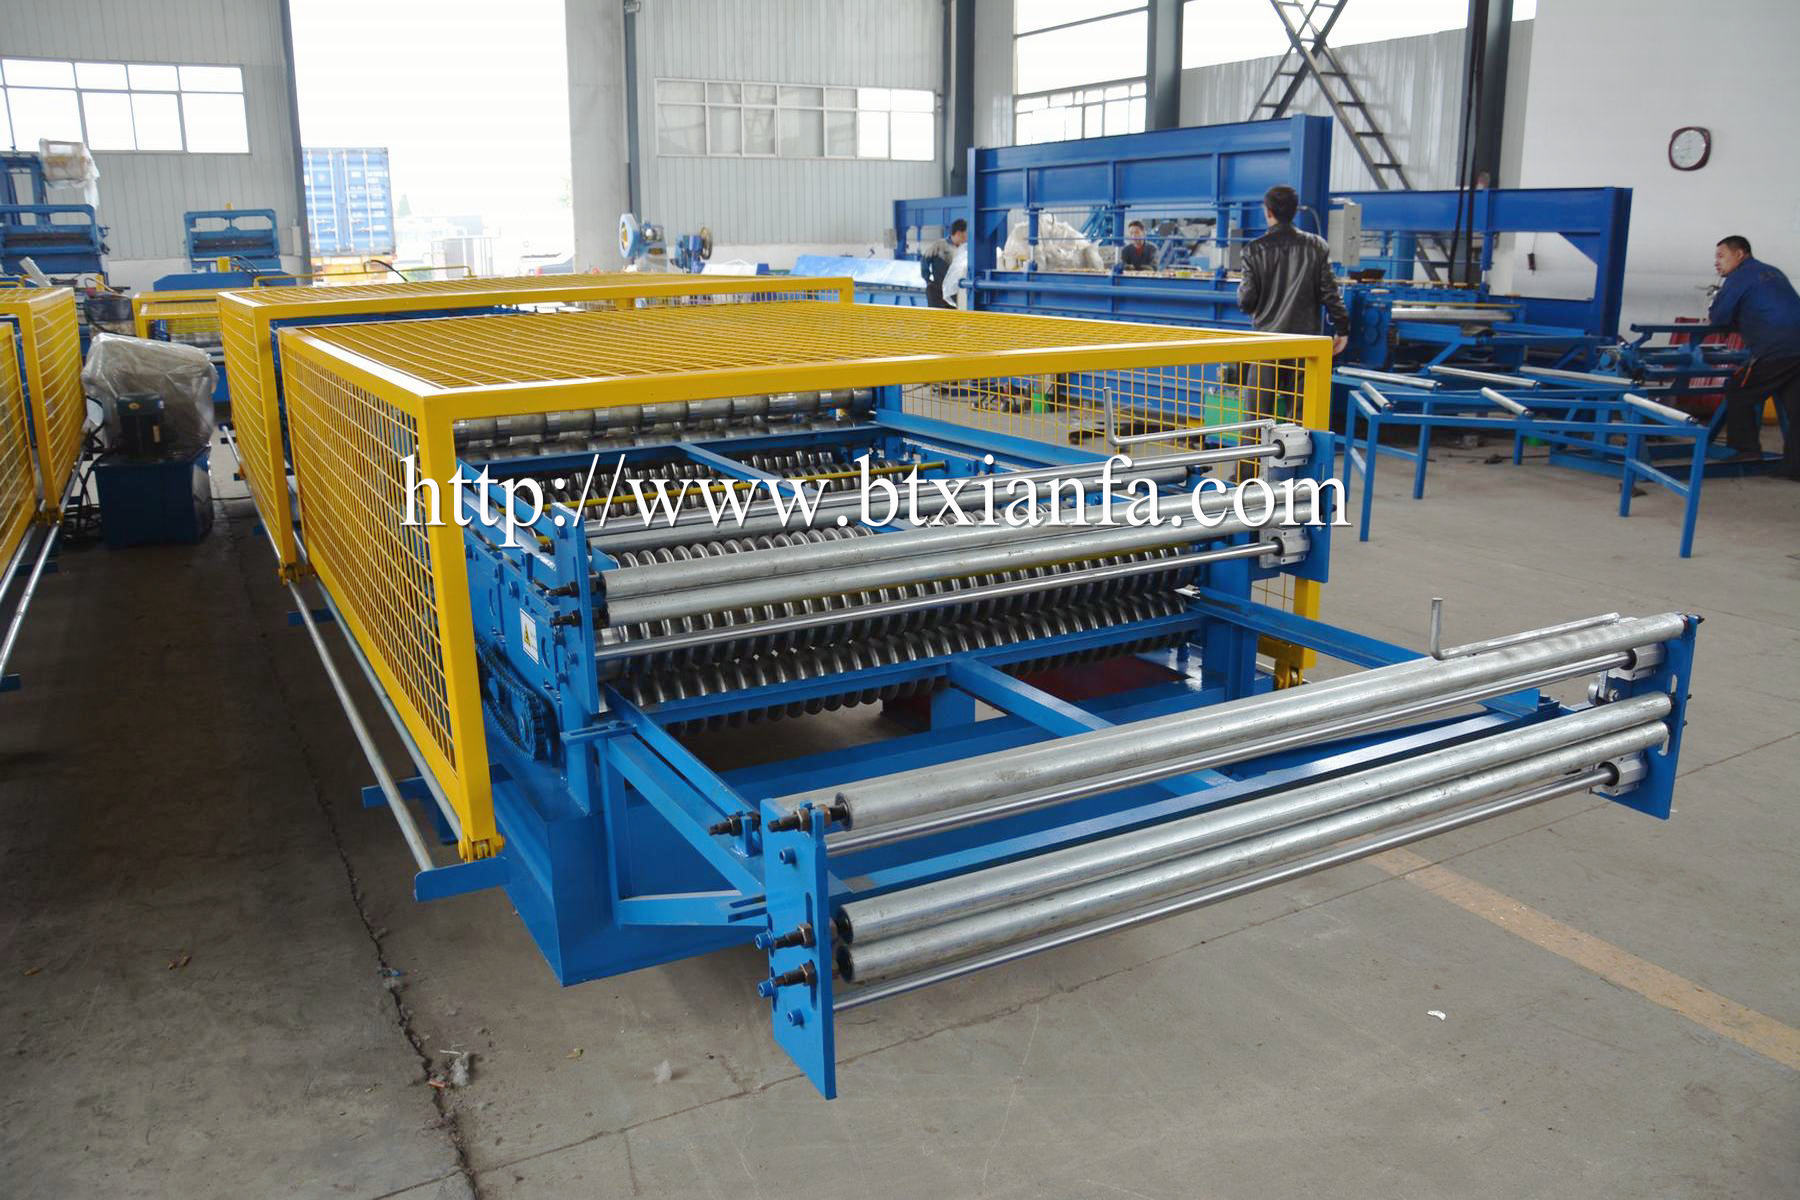 manufacturing machine